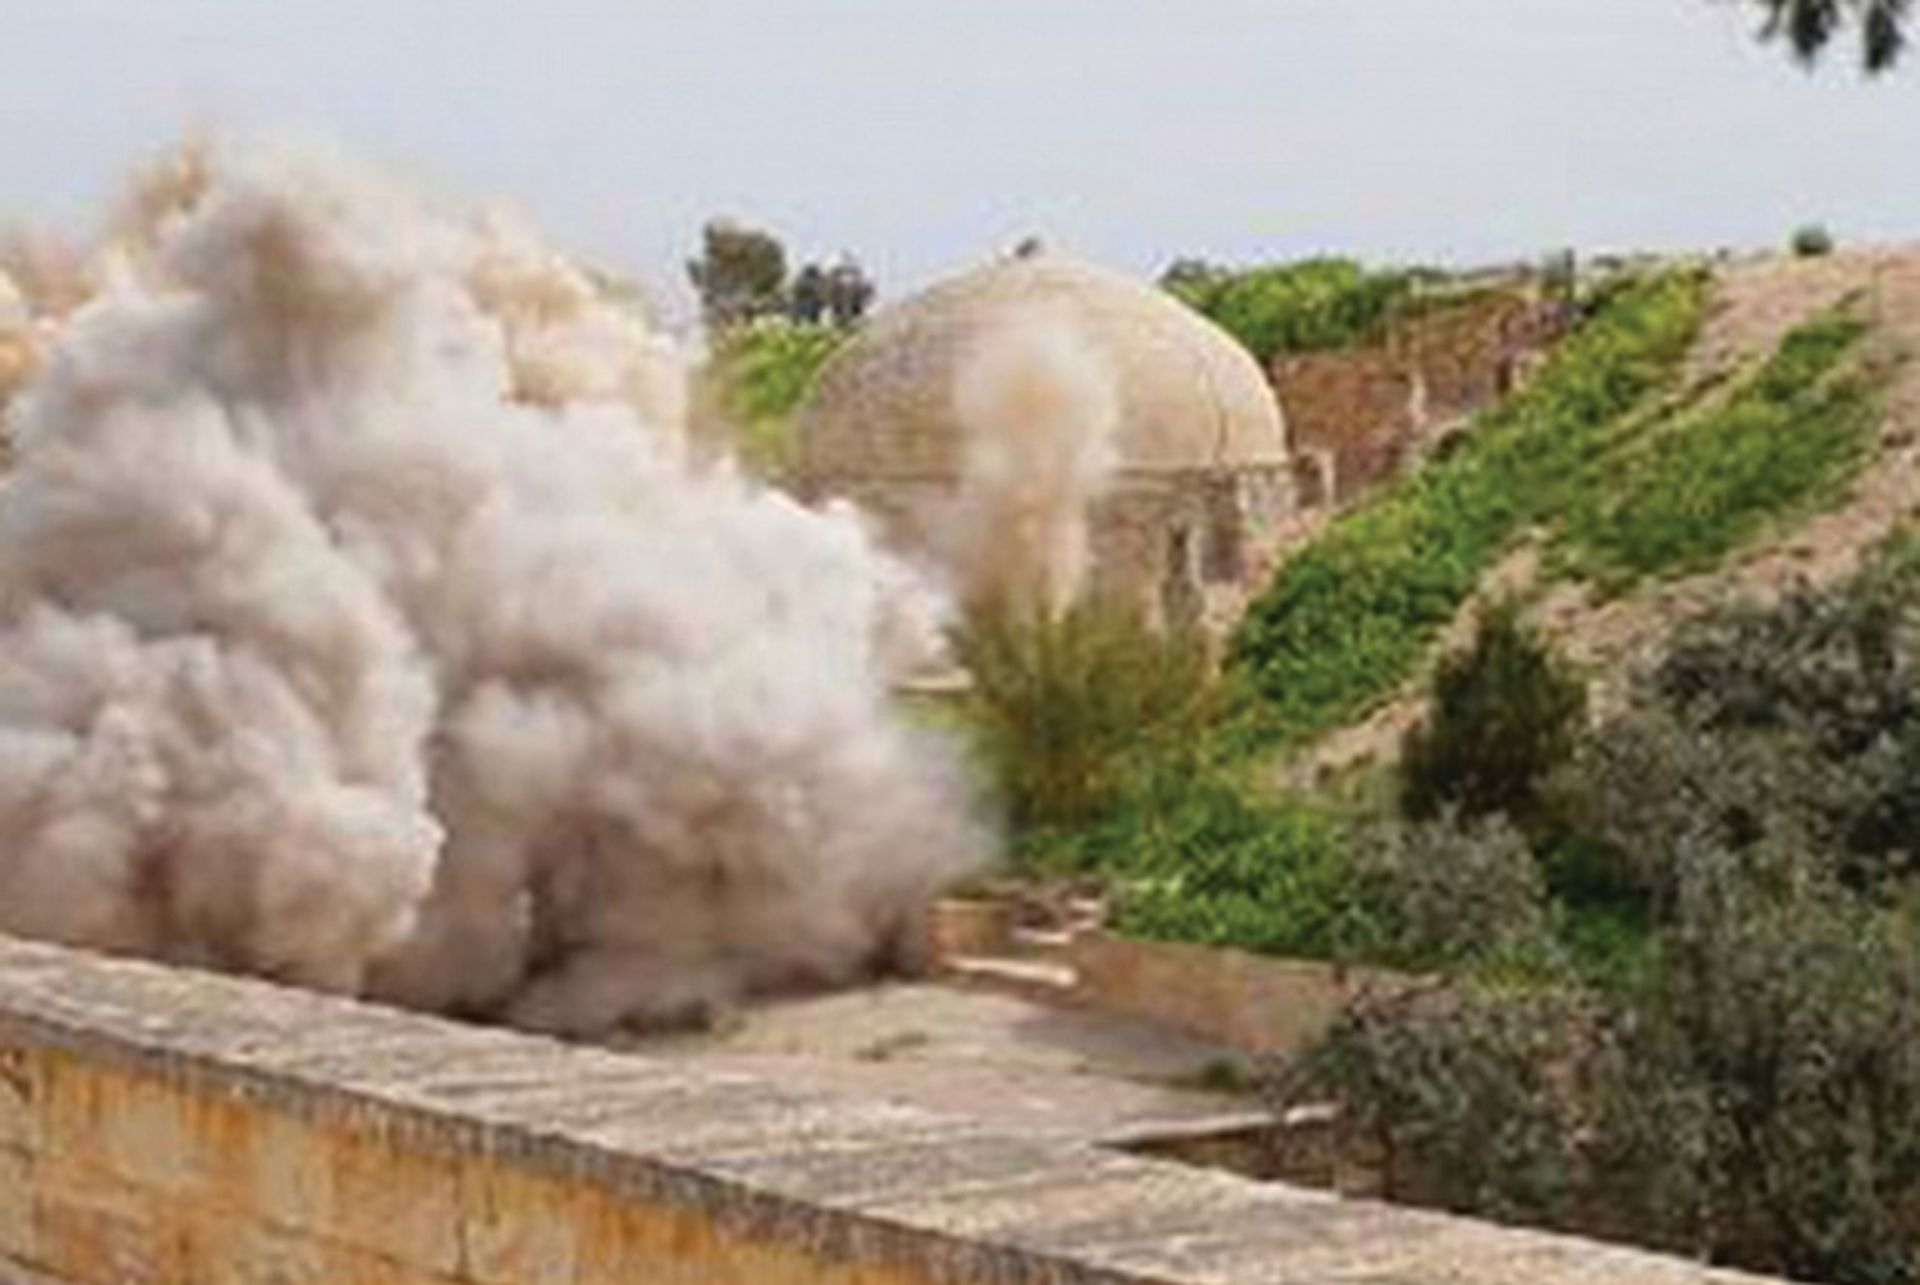 An Islamic State image of explosions at the fourth-century Christian Mar Behnam monastery in Iraq